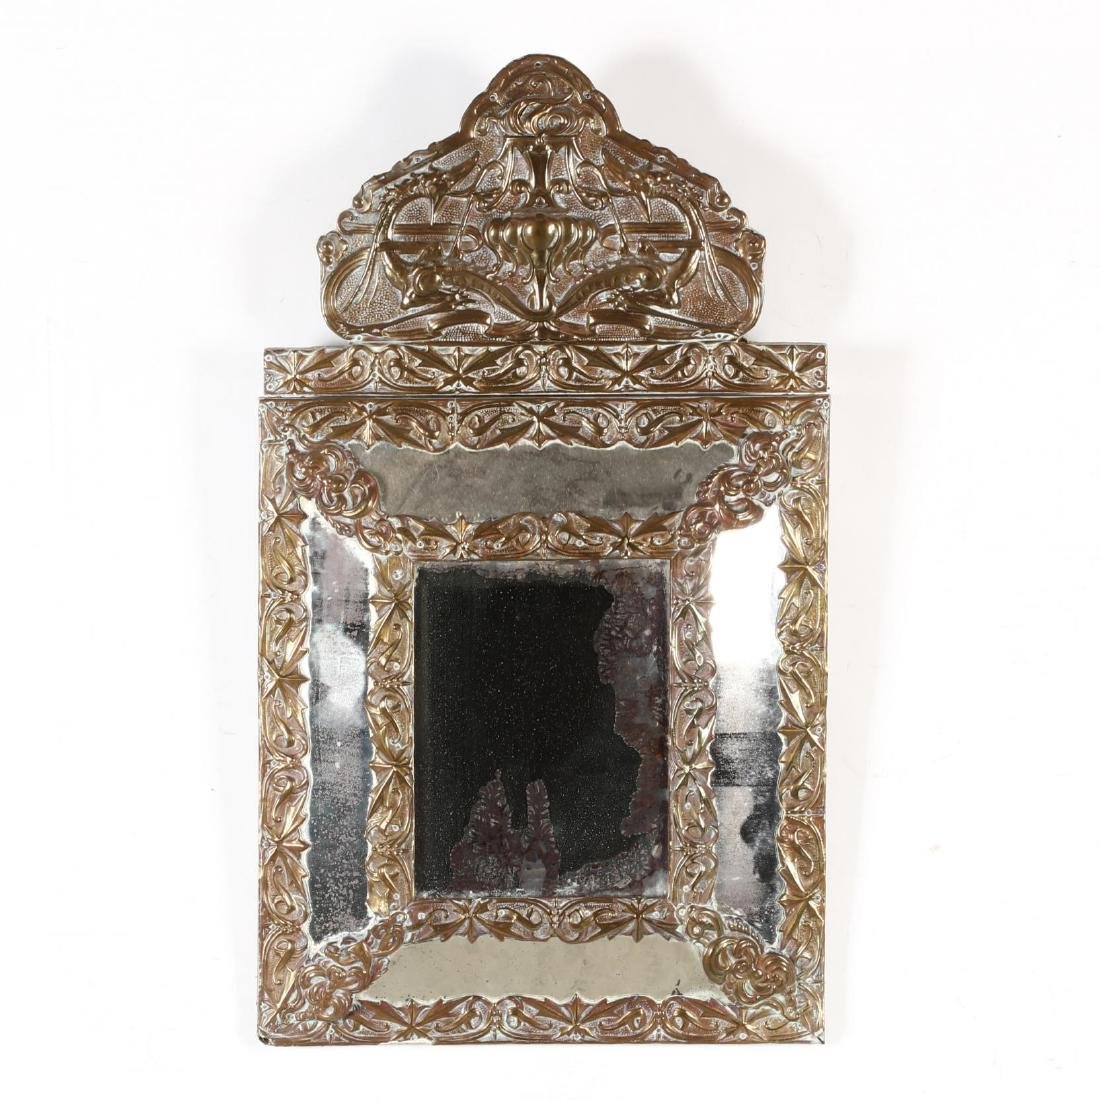 An Antique Continental Art Nouveau Mirror